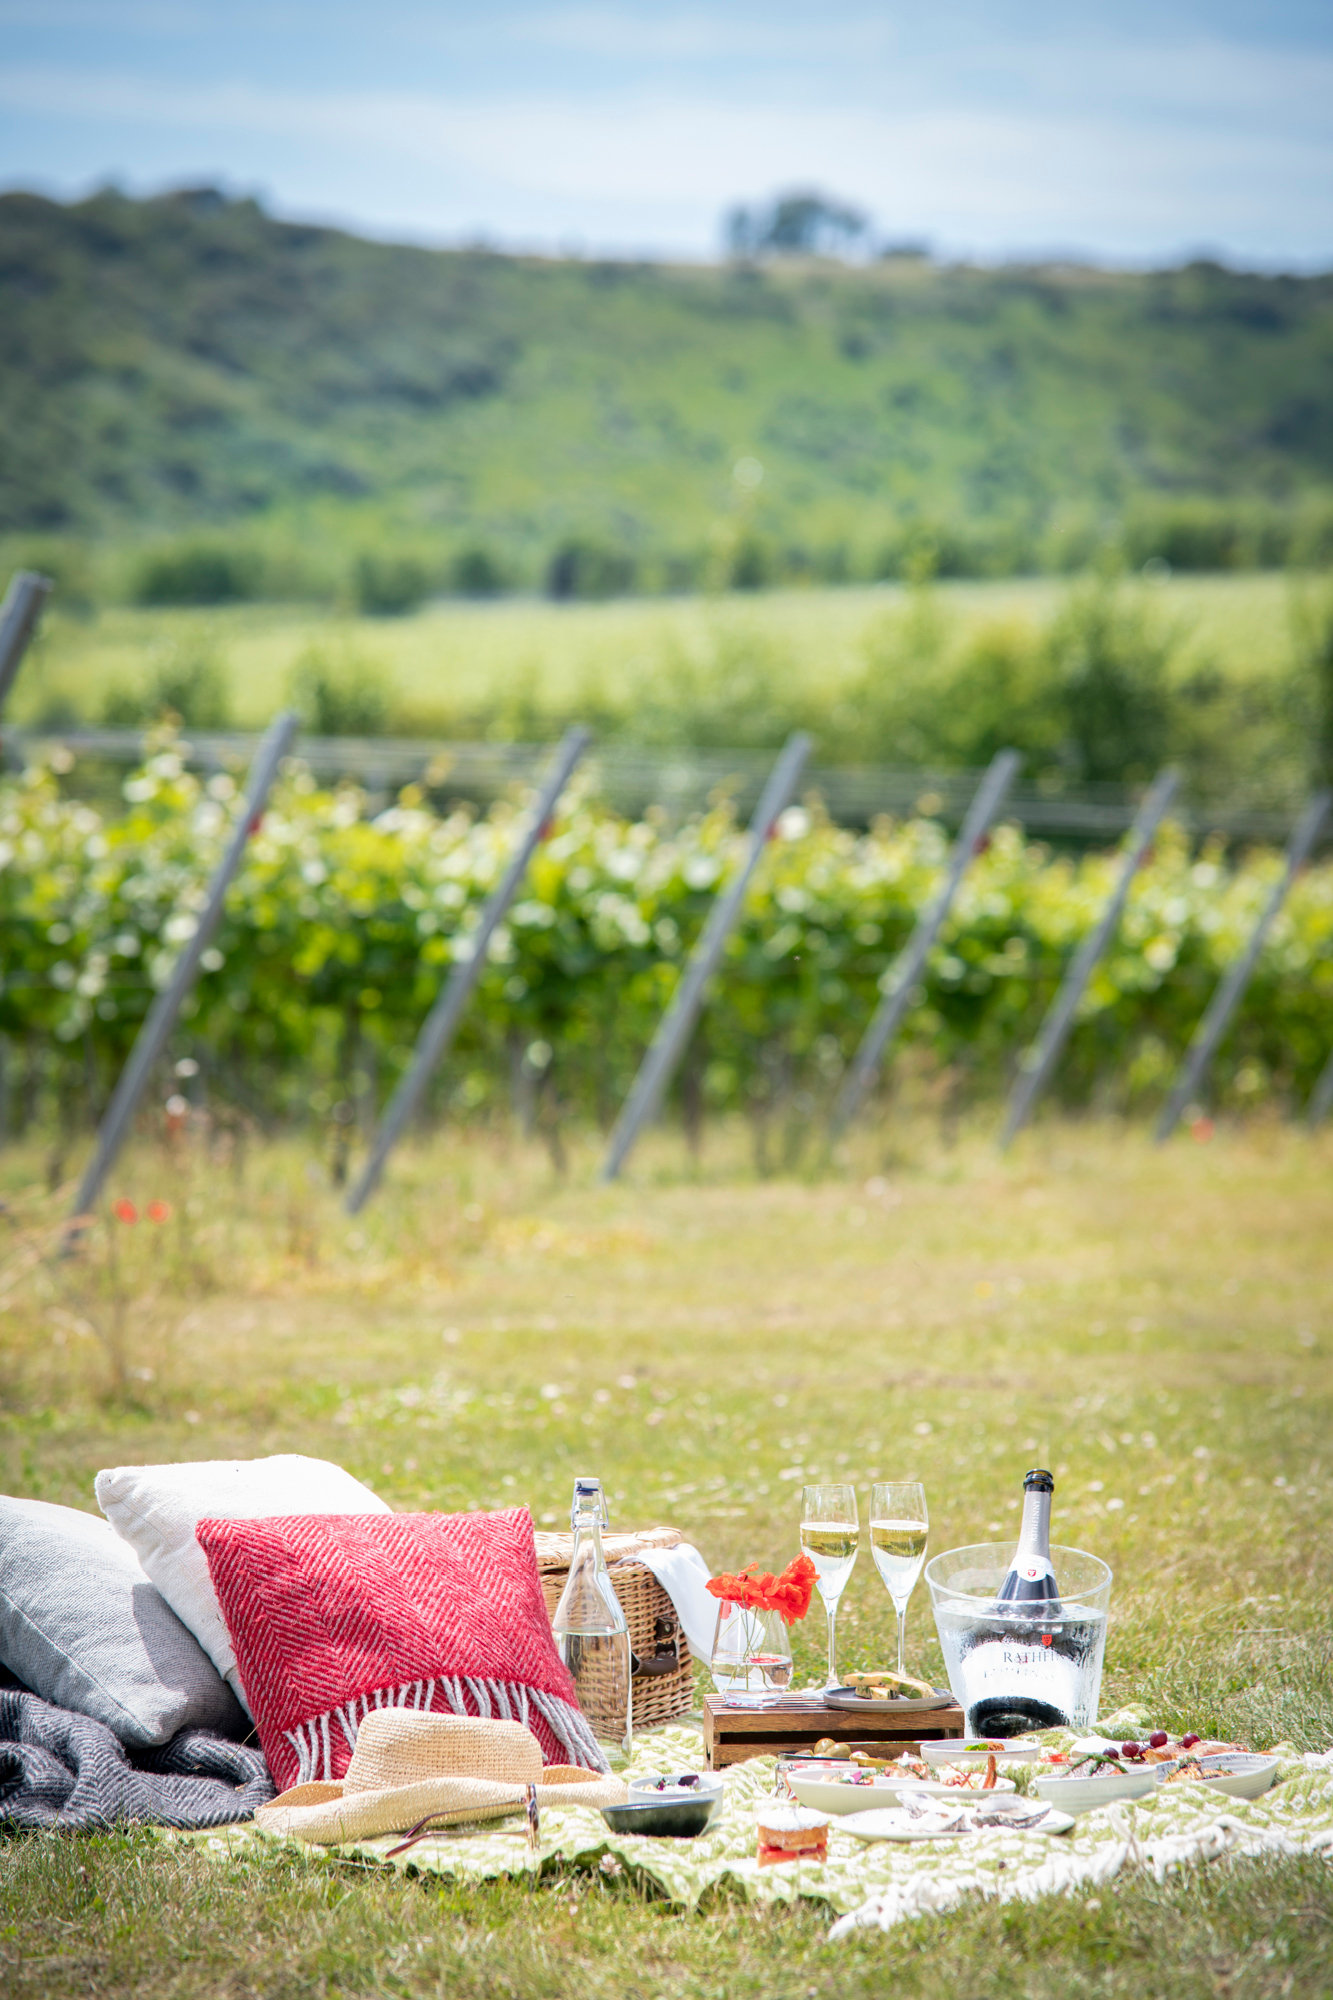 A perfect option for social distancing, Rathfinny offers sumptuous picnics on the estate